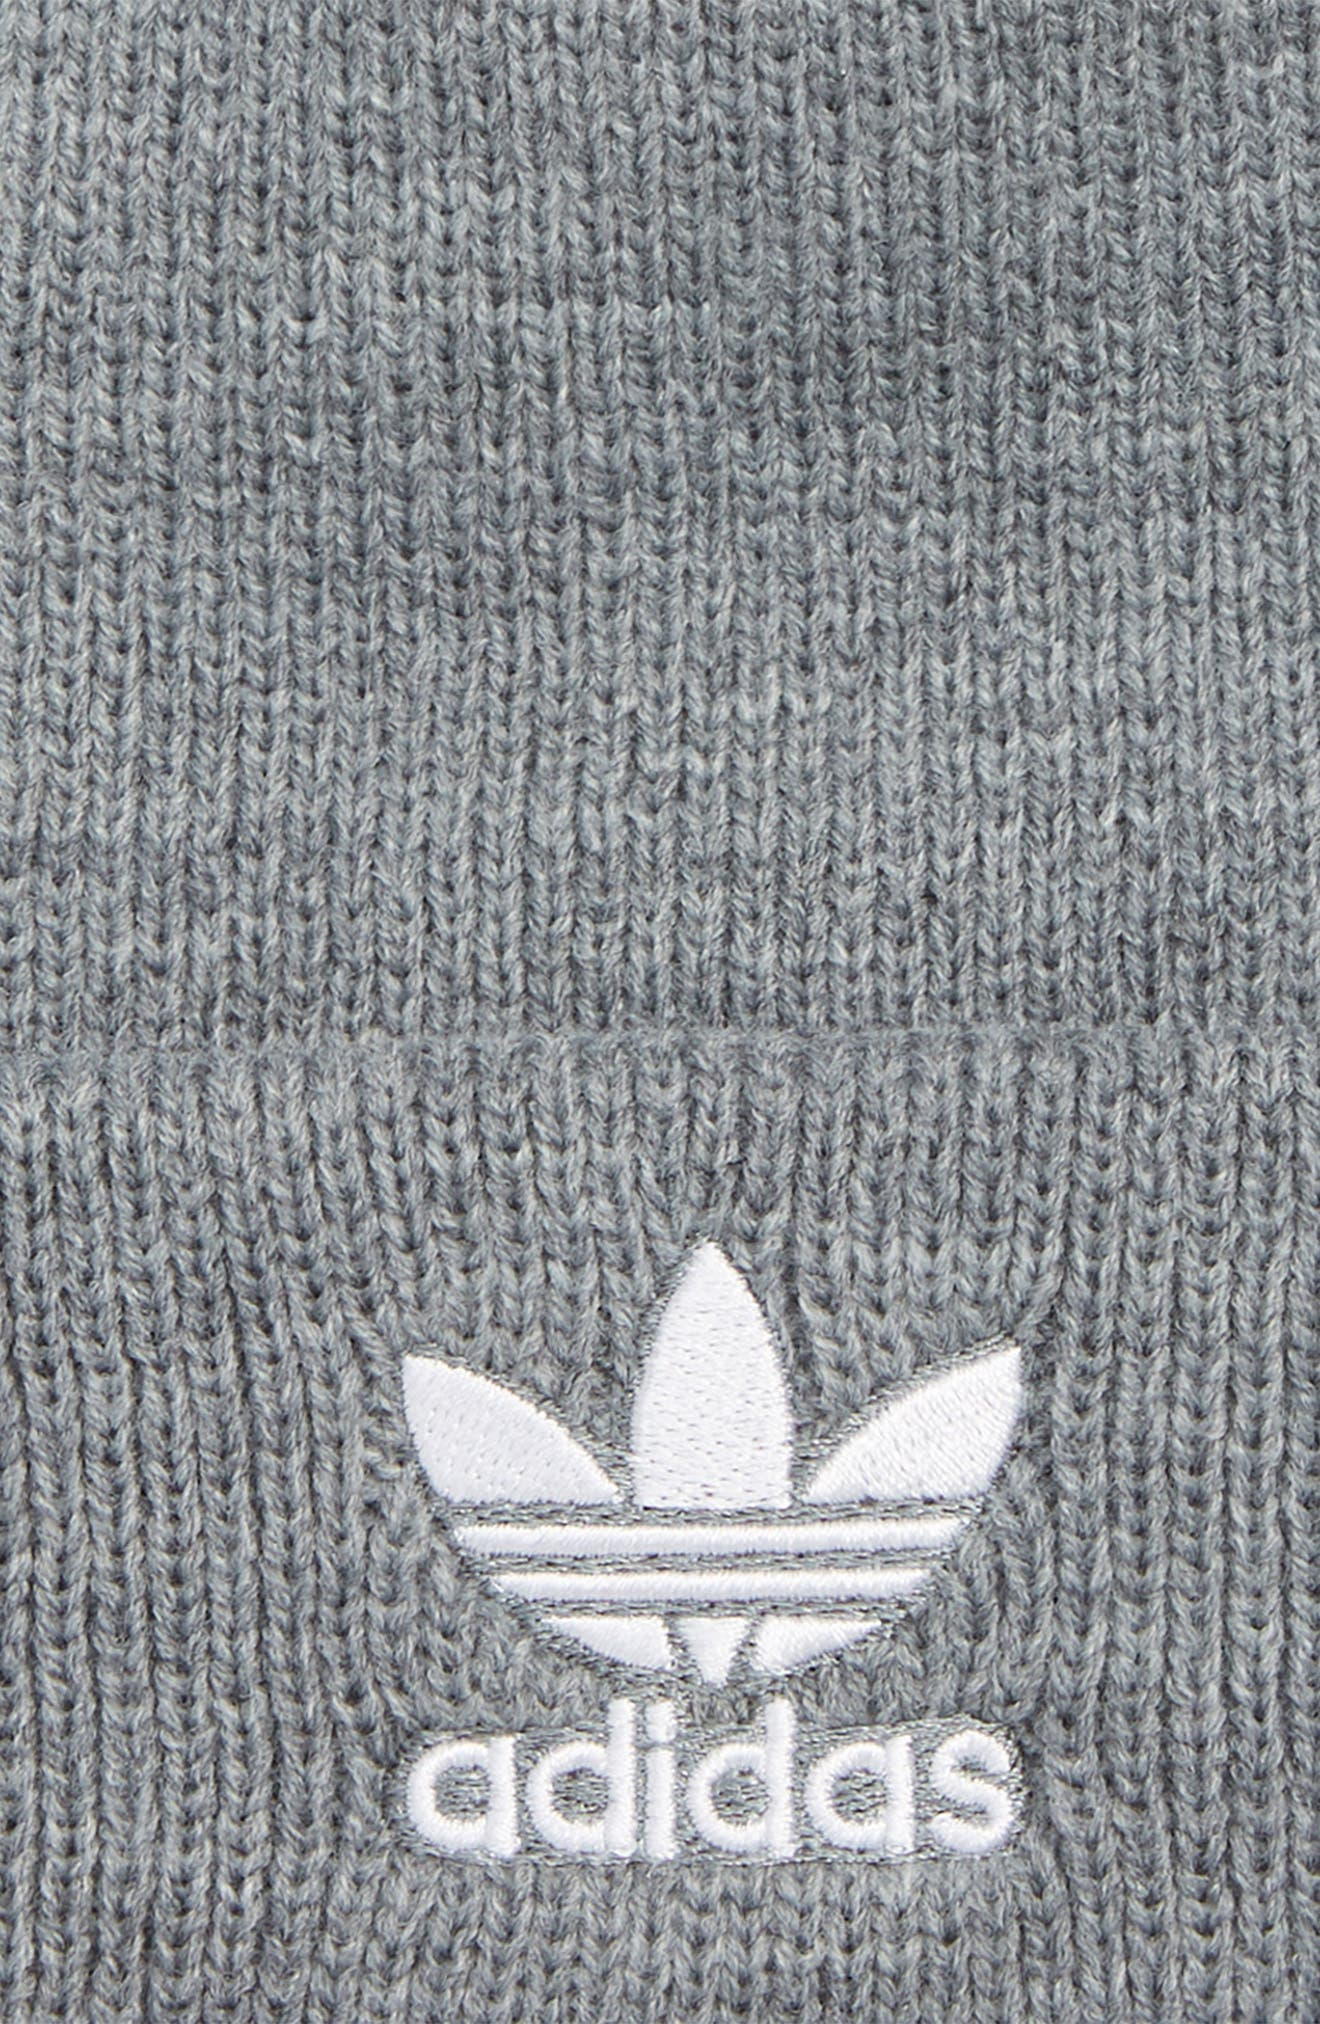 Embroidered Trefoil Beanie,                             Alternate thumbnail 2, color,                             HEATHER GREY/ WHITE